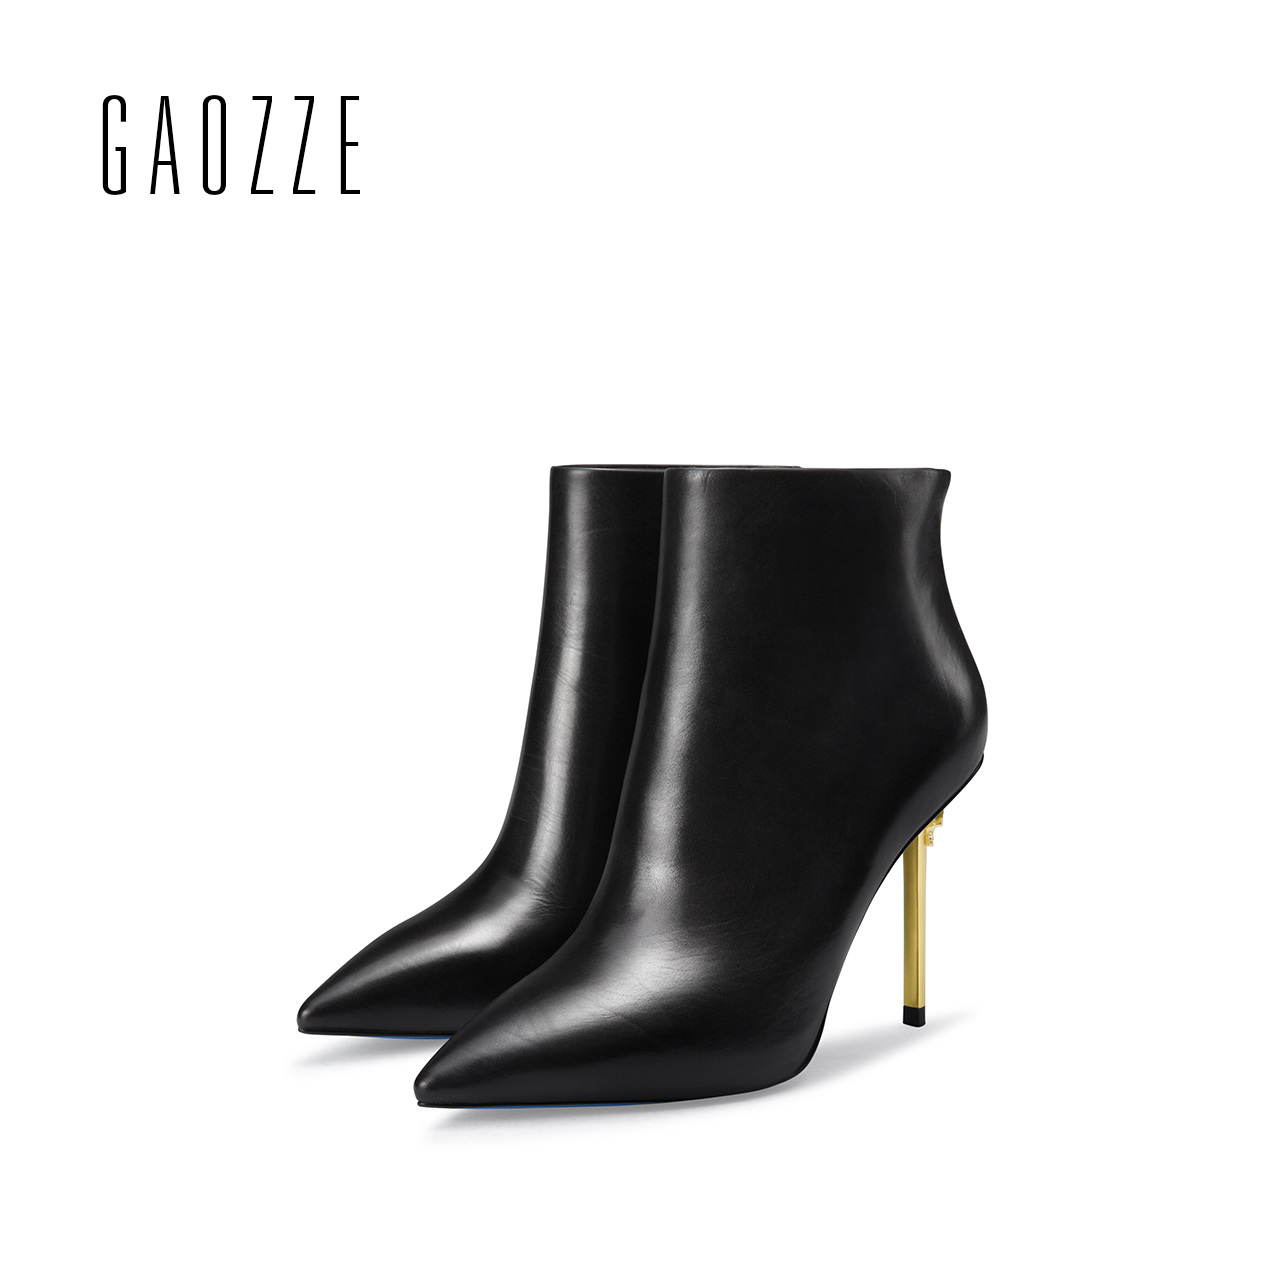 GAOZZE women genuine leather boots black pointed toe sexy high-heeled women ankle boots female side zipper autumn boots 2017 new gaozze suede leather women ankle boots female pointed black side zipper ankle boots heels shoes women 2017 autumn new